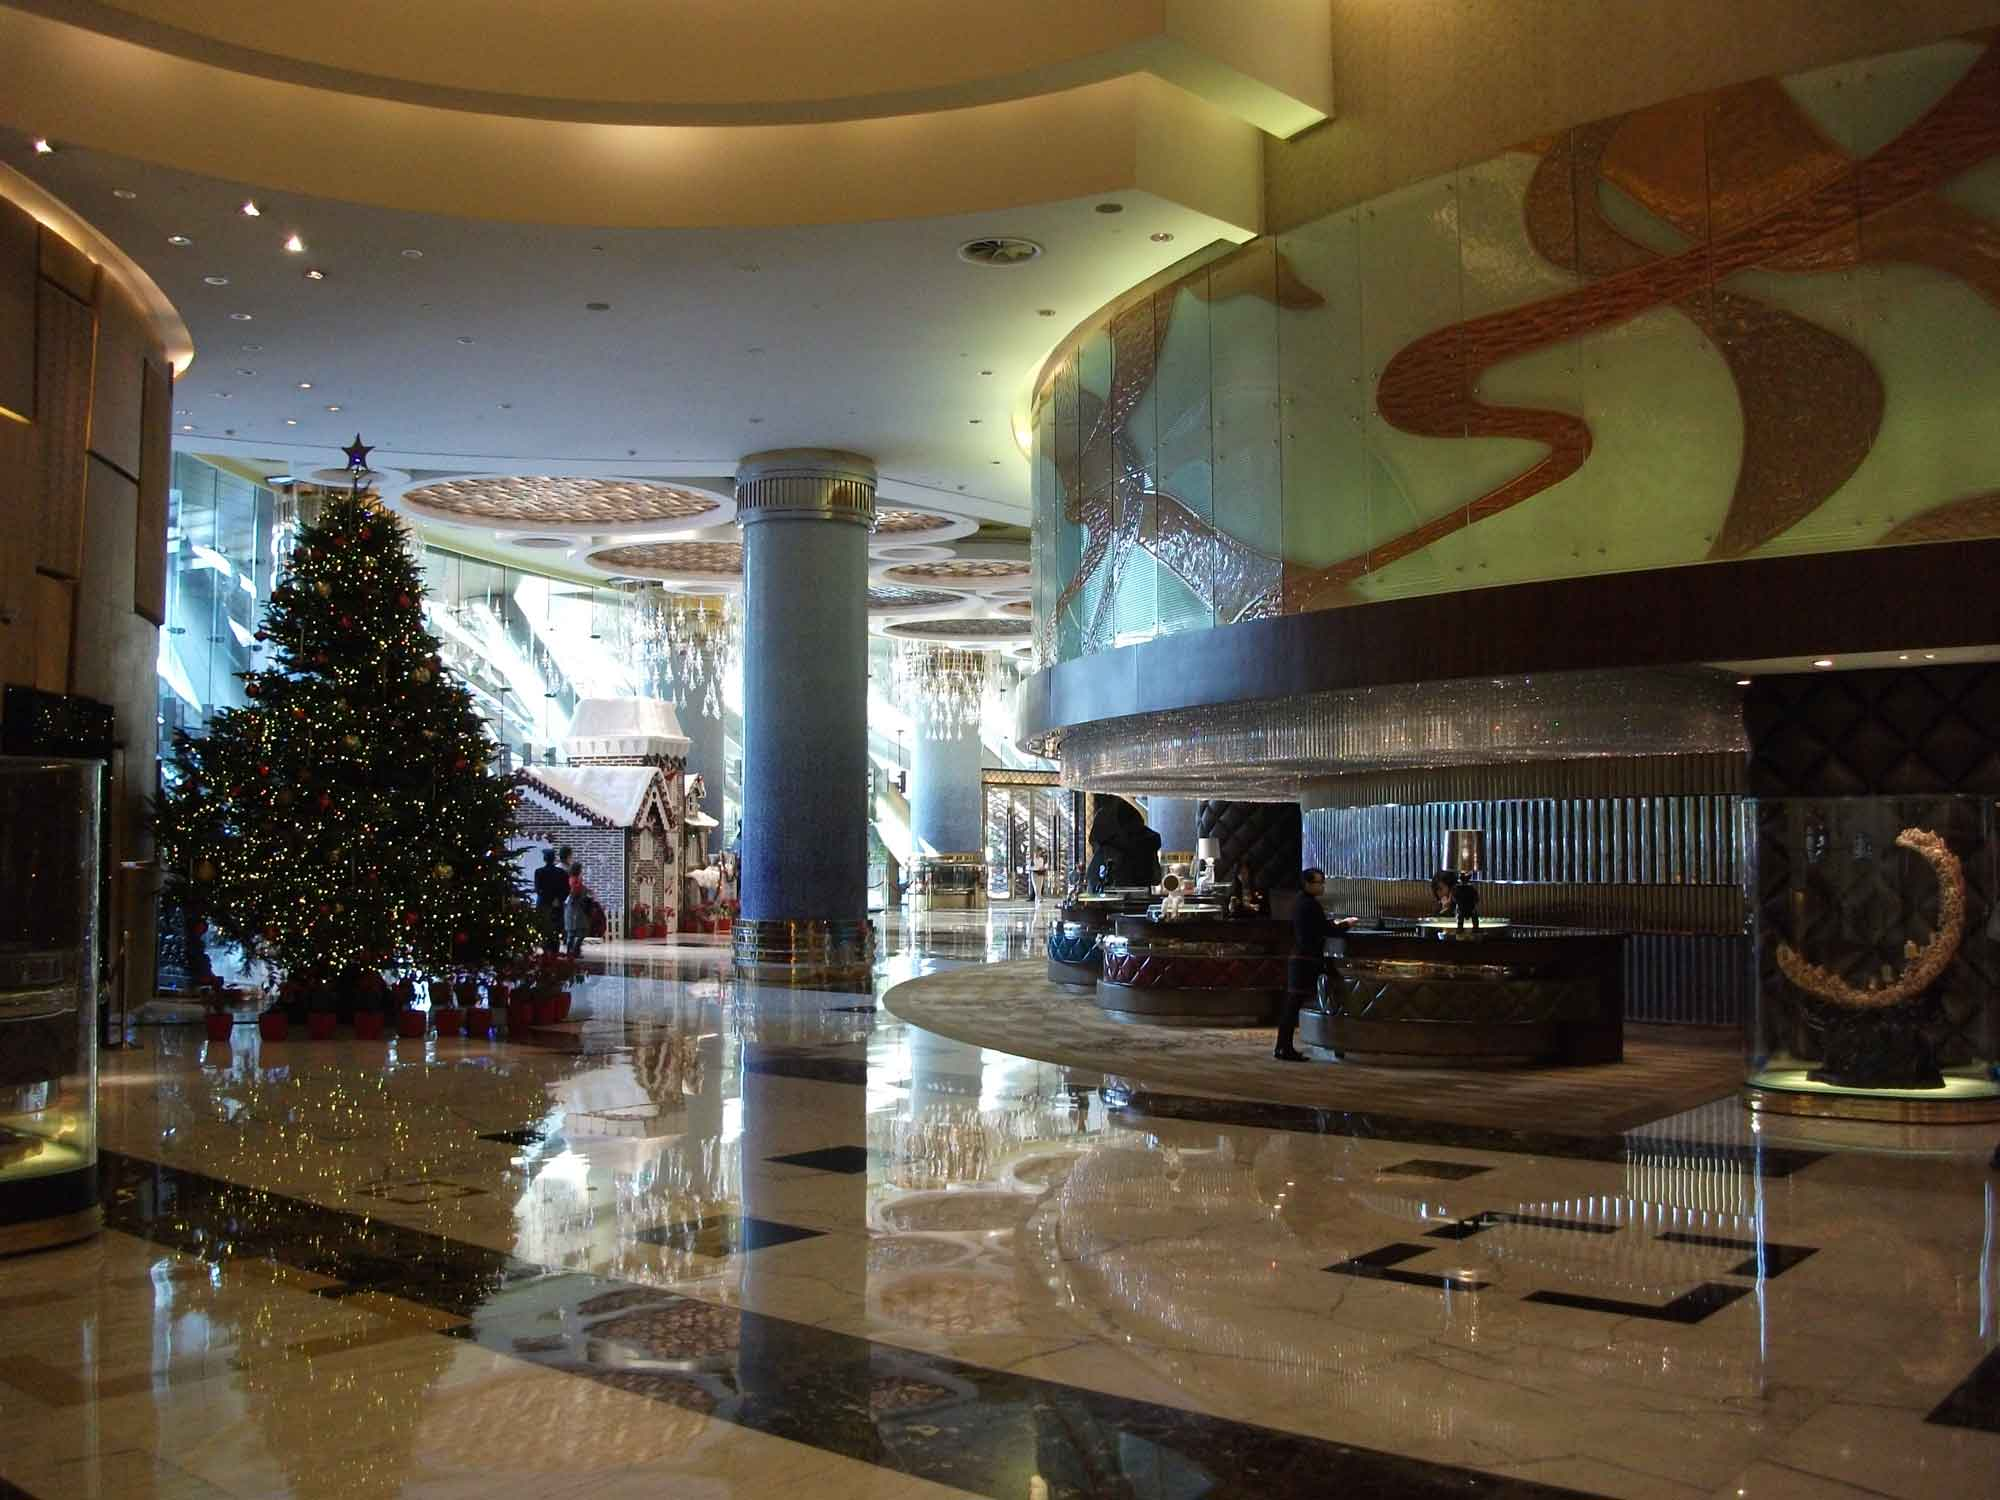 Grand Lisboa lobby with Christmas tree